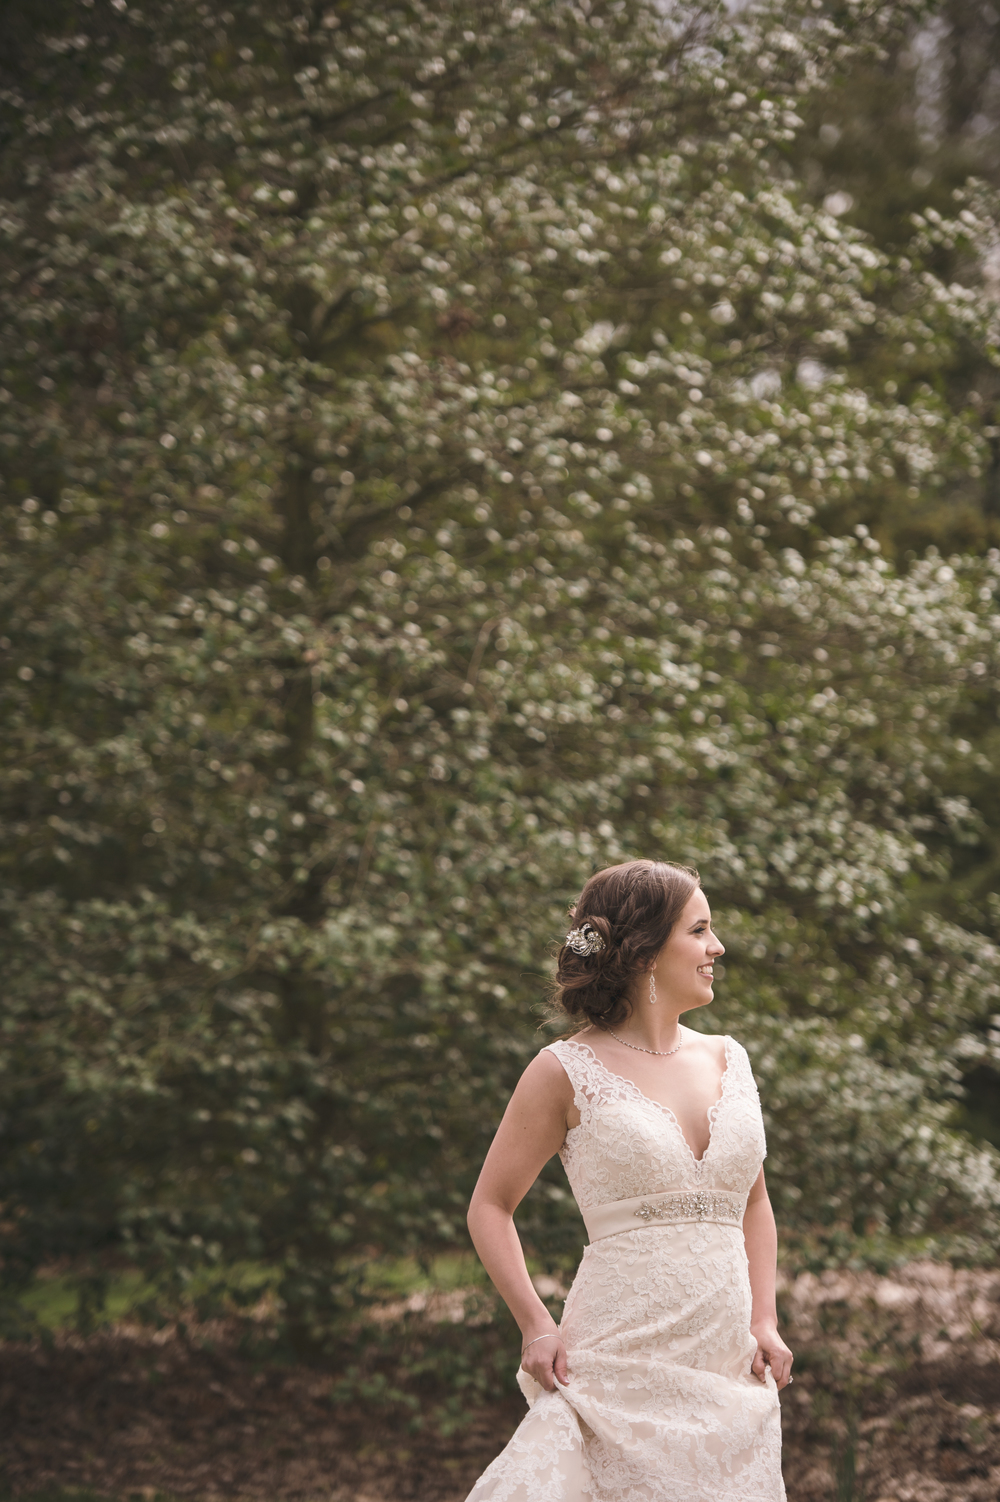 Wedding photography at The Park of Roses in Columbus, OH